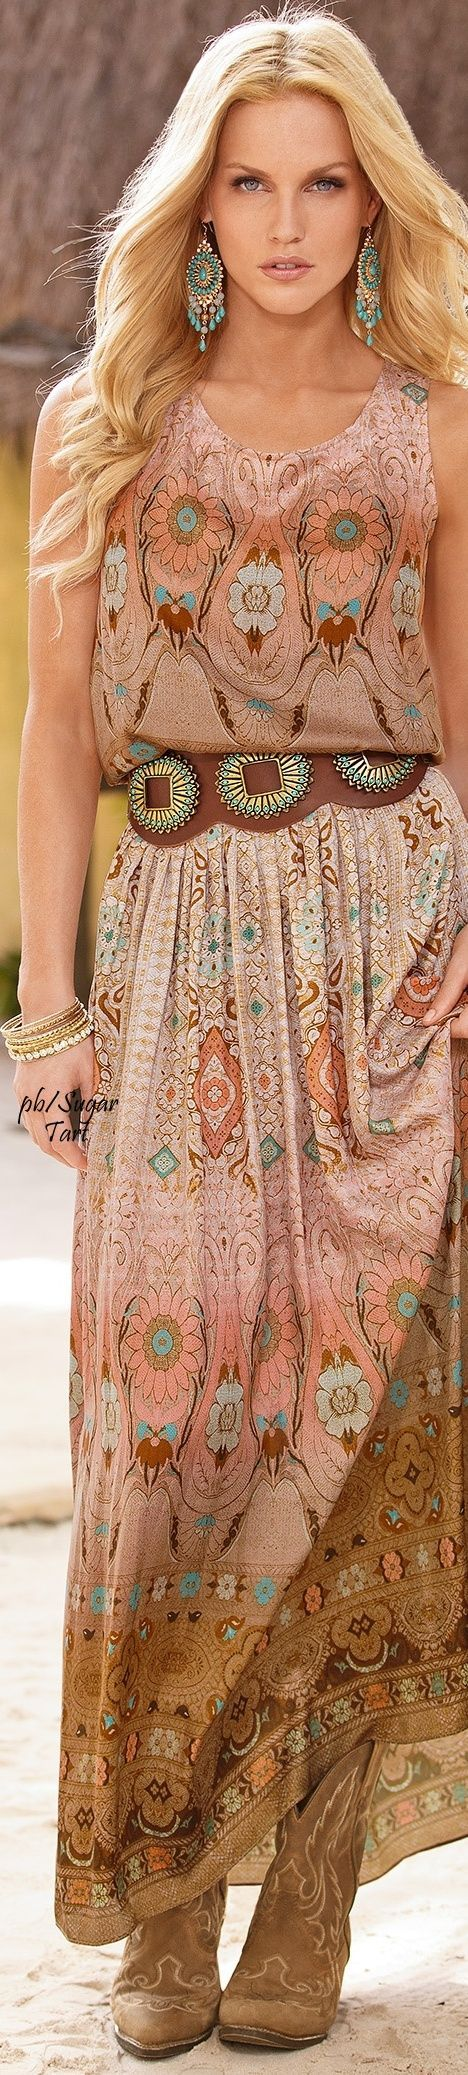 Boho - Tres chic! Mustermix mit hellem Apricot (Farbpassnummer 14)  Kerstin Tomancok / Farb-, Typ-, Stil & Imageberatung